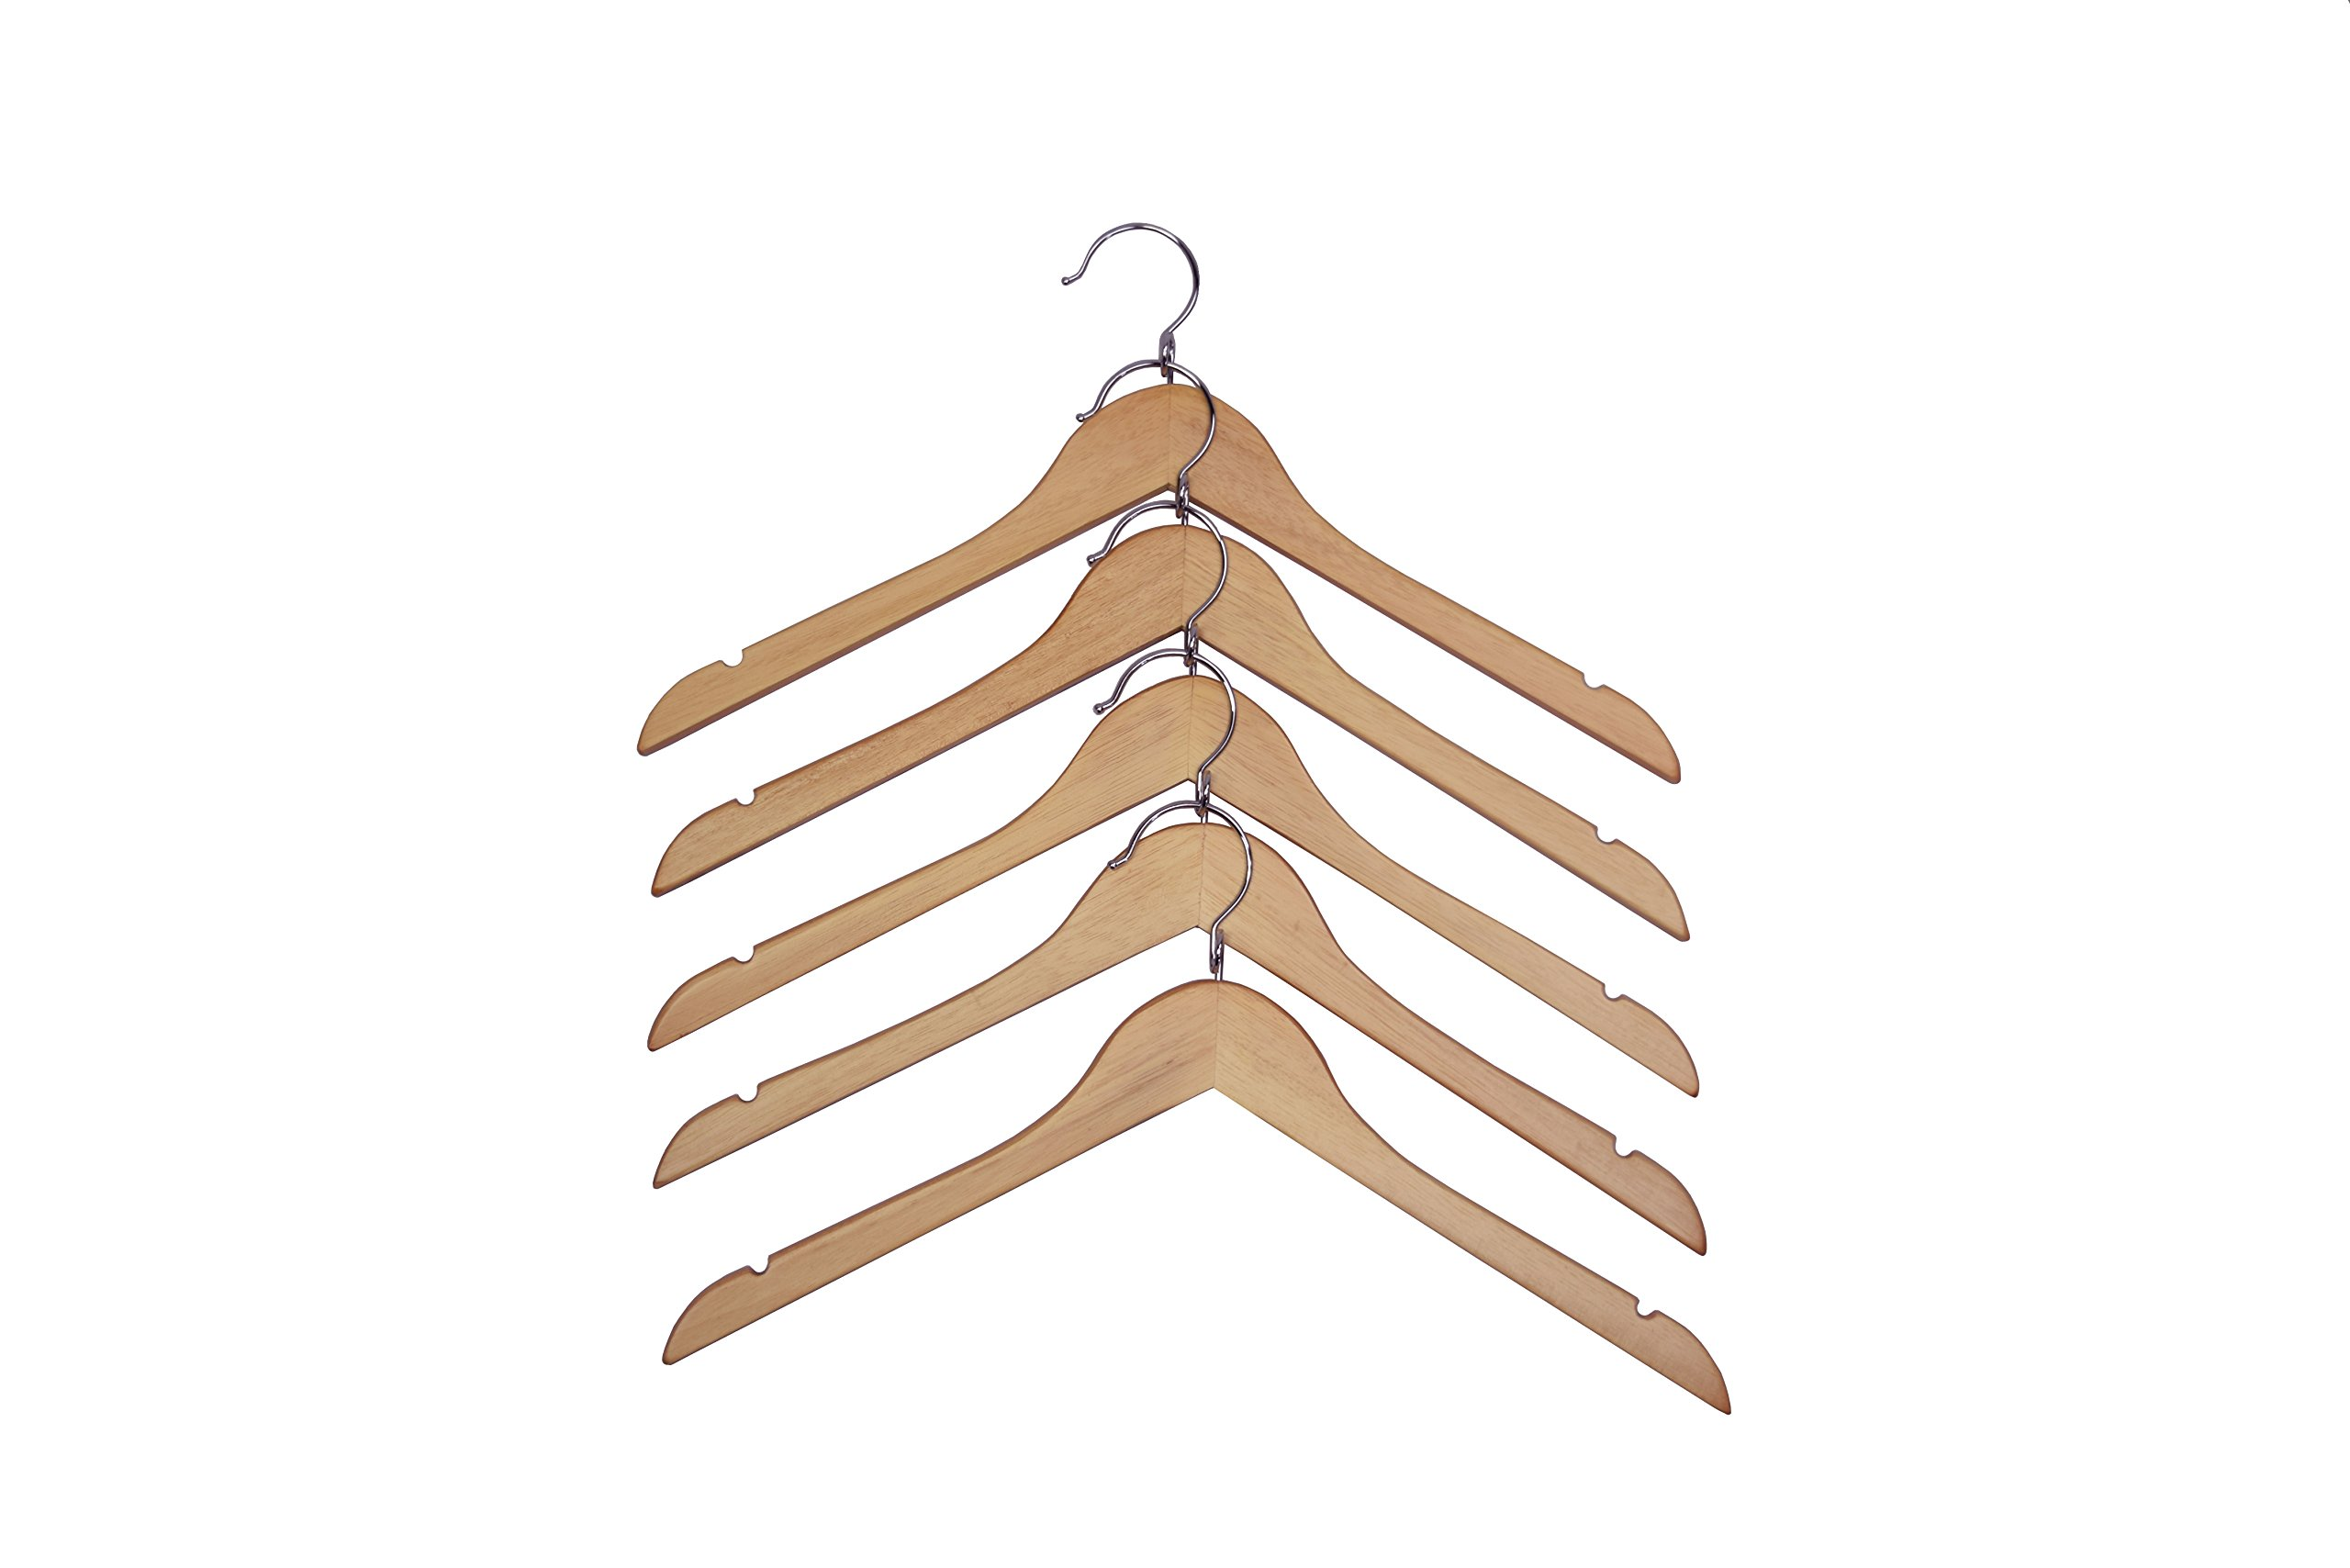 Proman Products Kascade Wooden Hanger with Shoulder Notches, Natural, 50 Piece / Box